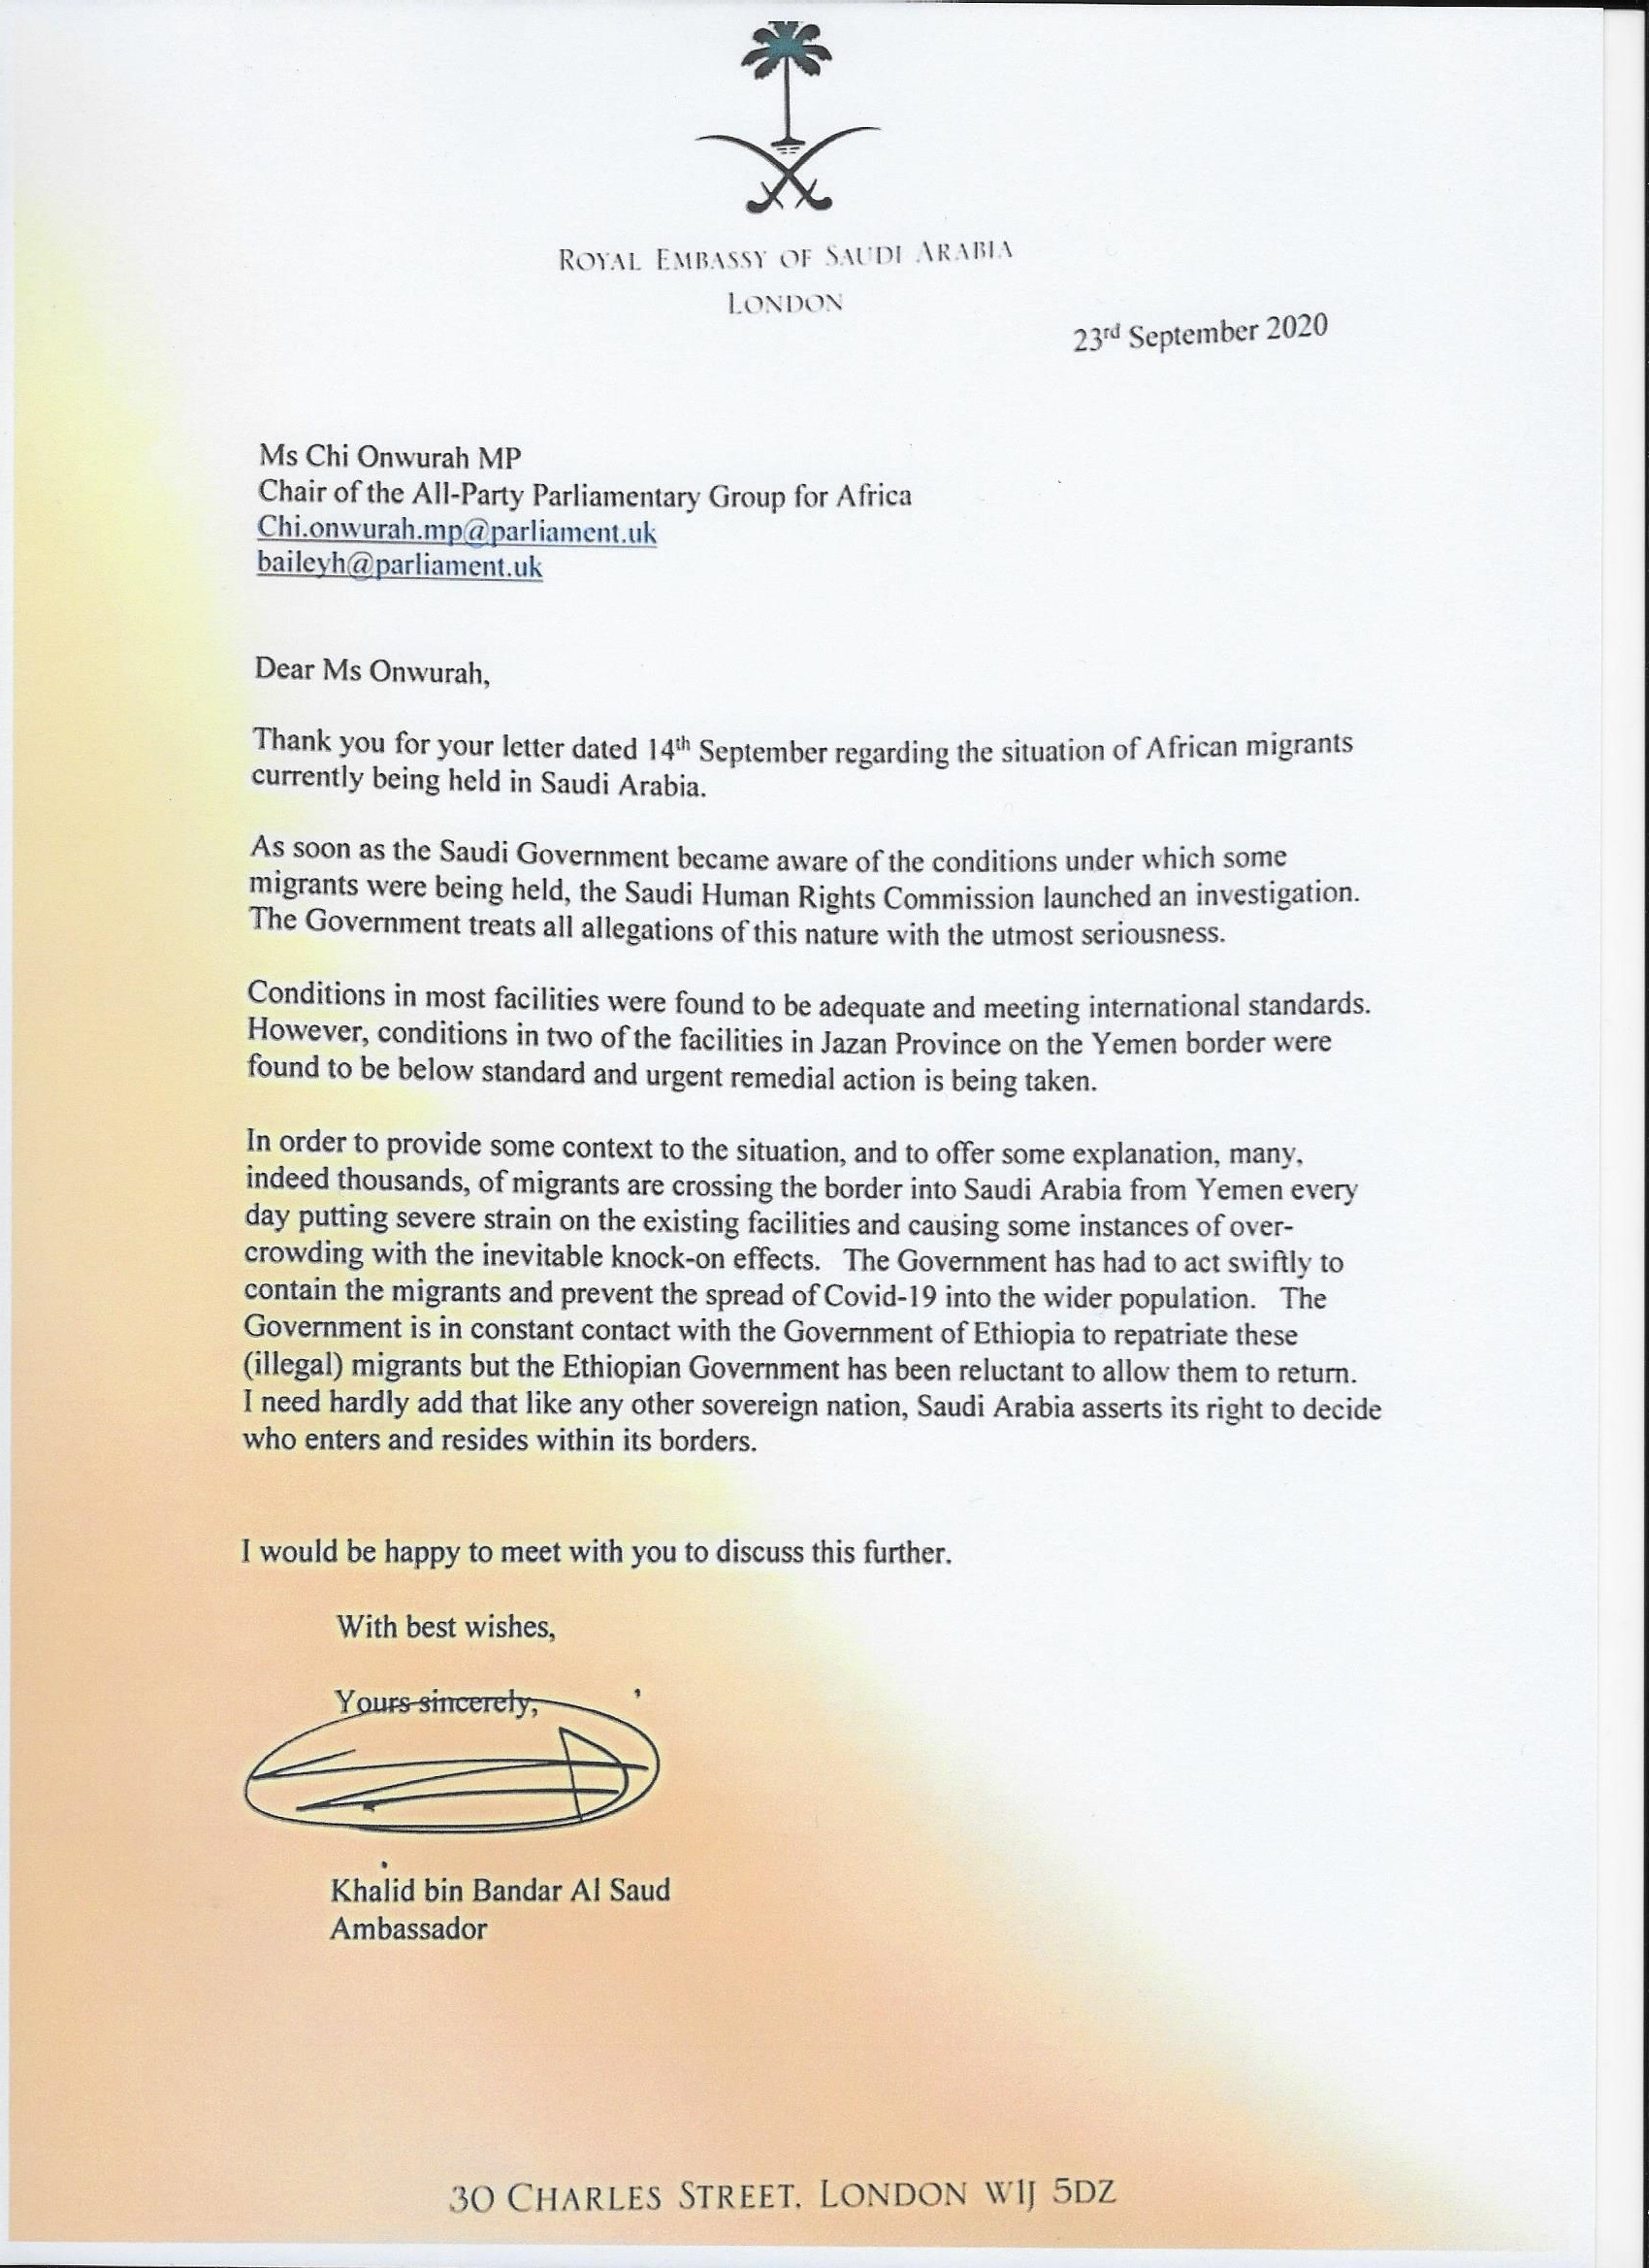 Letter from the Ambassador of Saudi Arabia re migrants